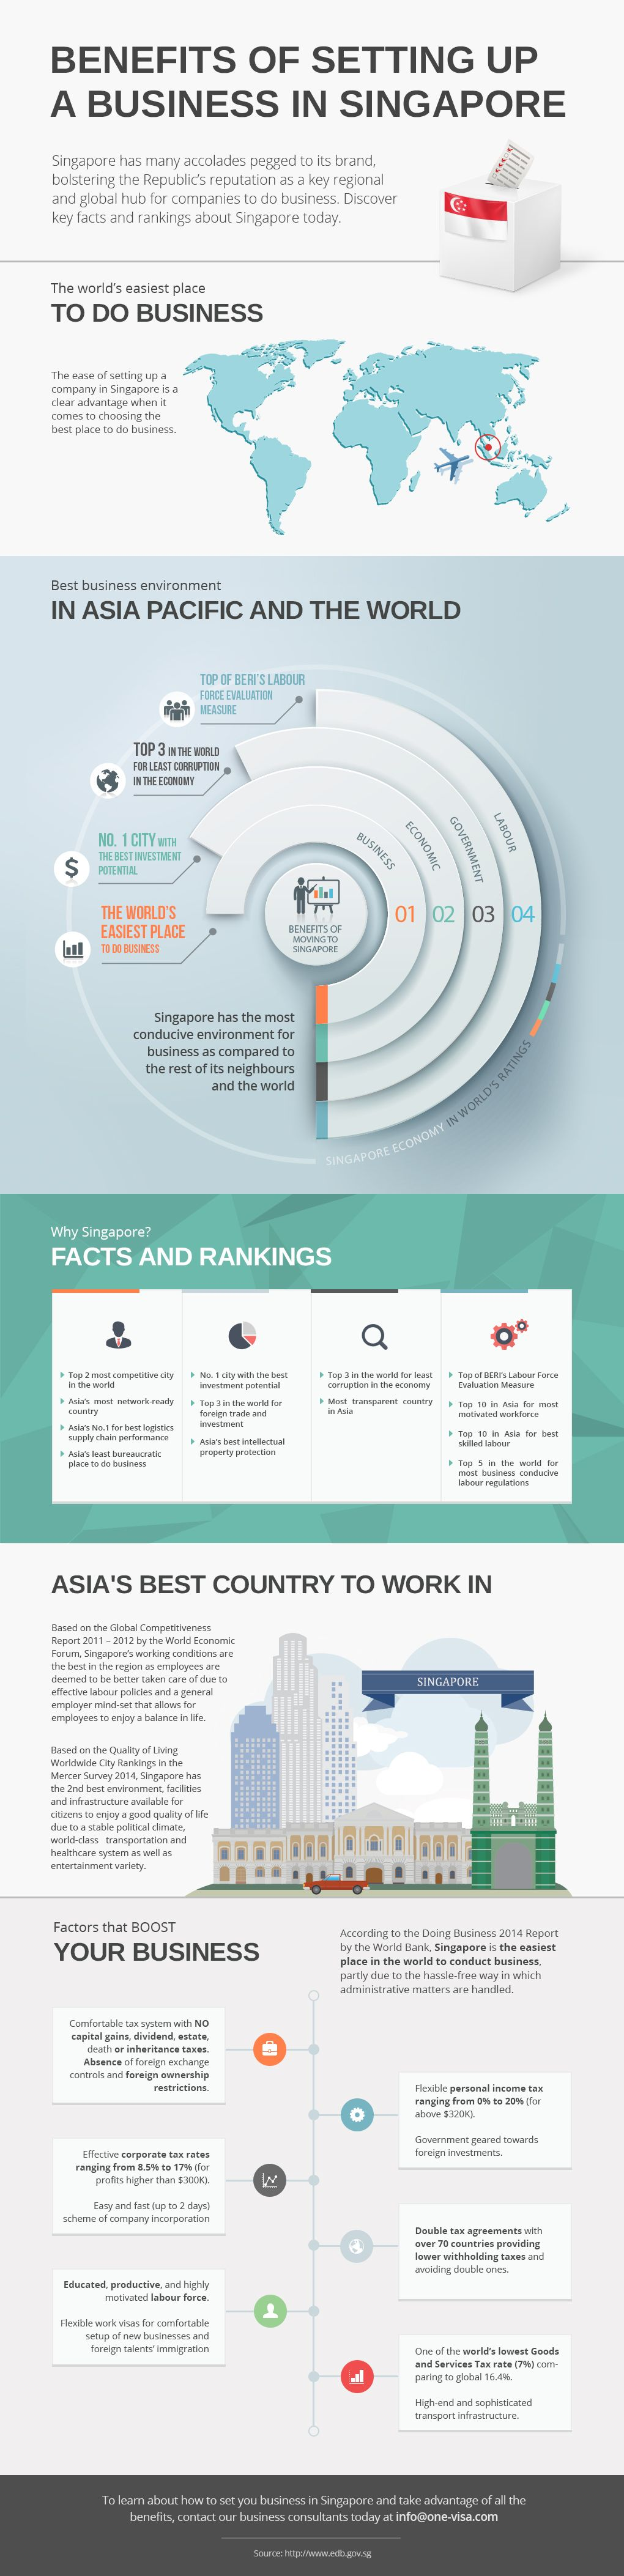 Benefits of Setting up a Business in Singapore